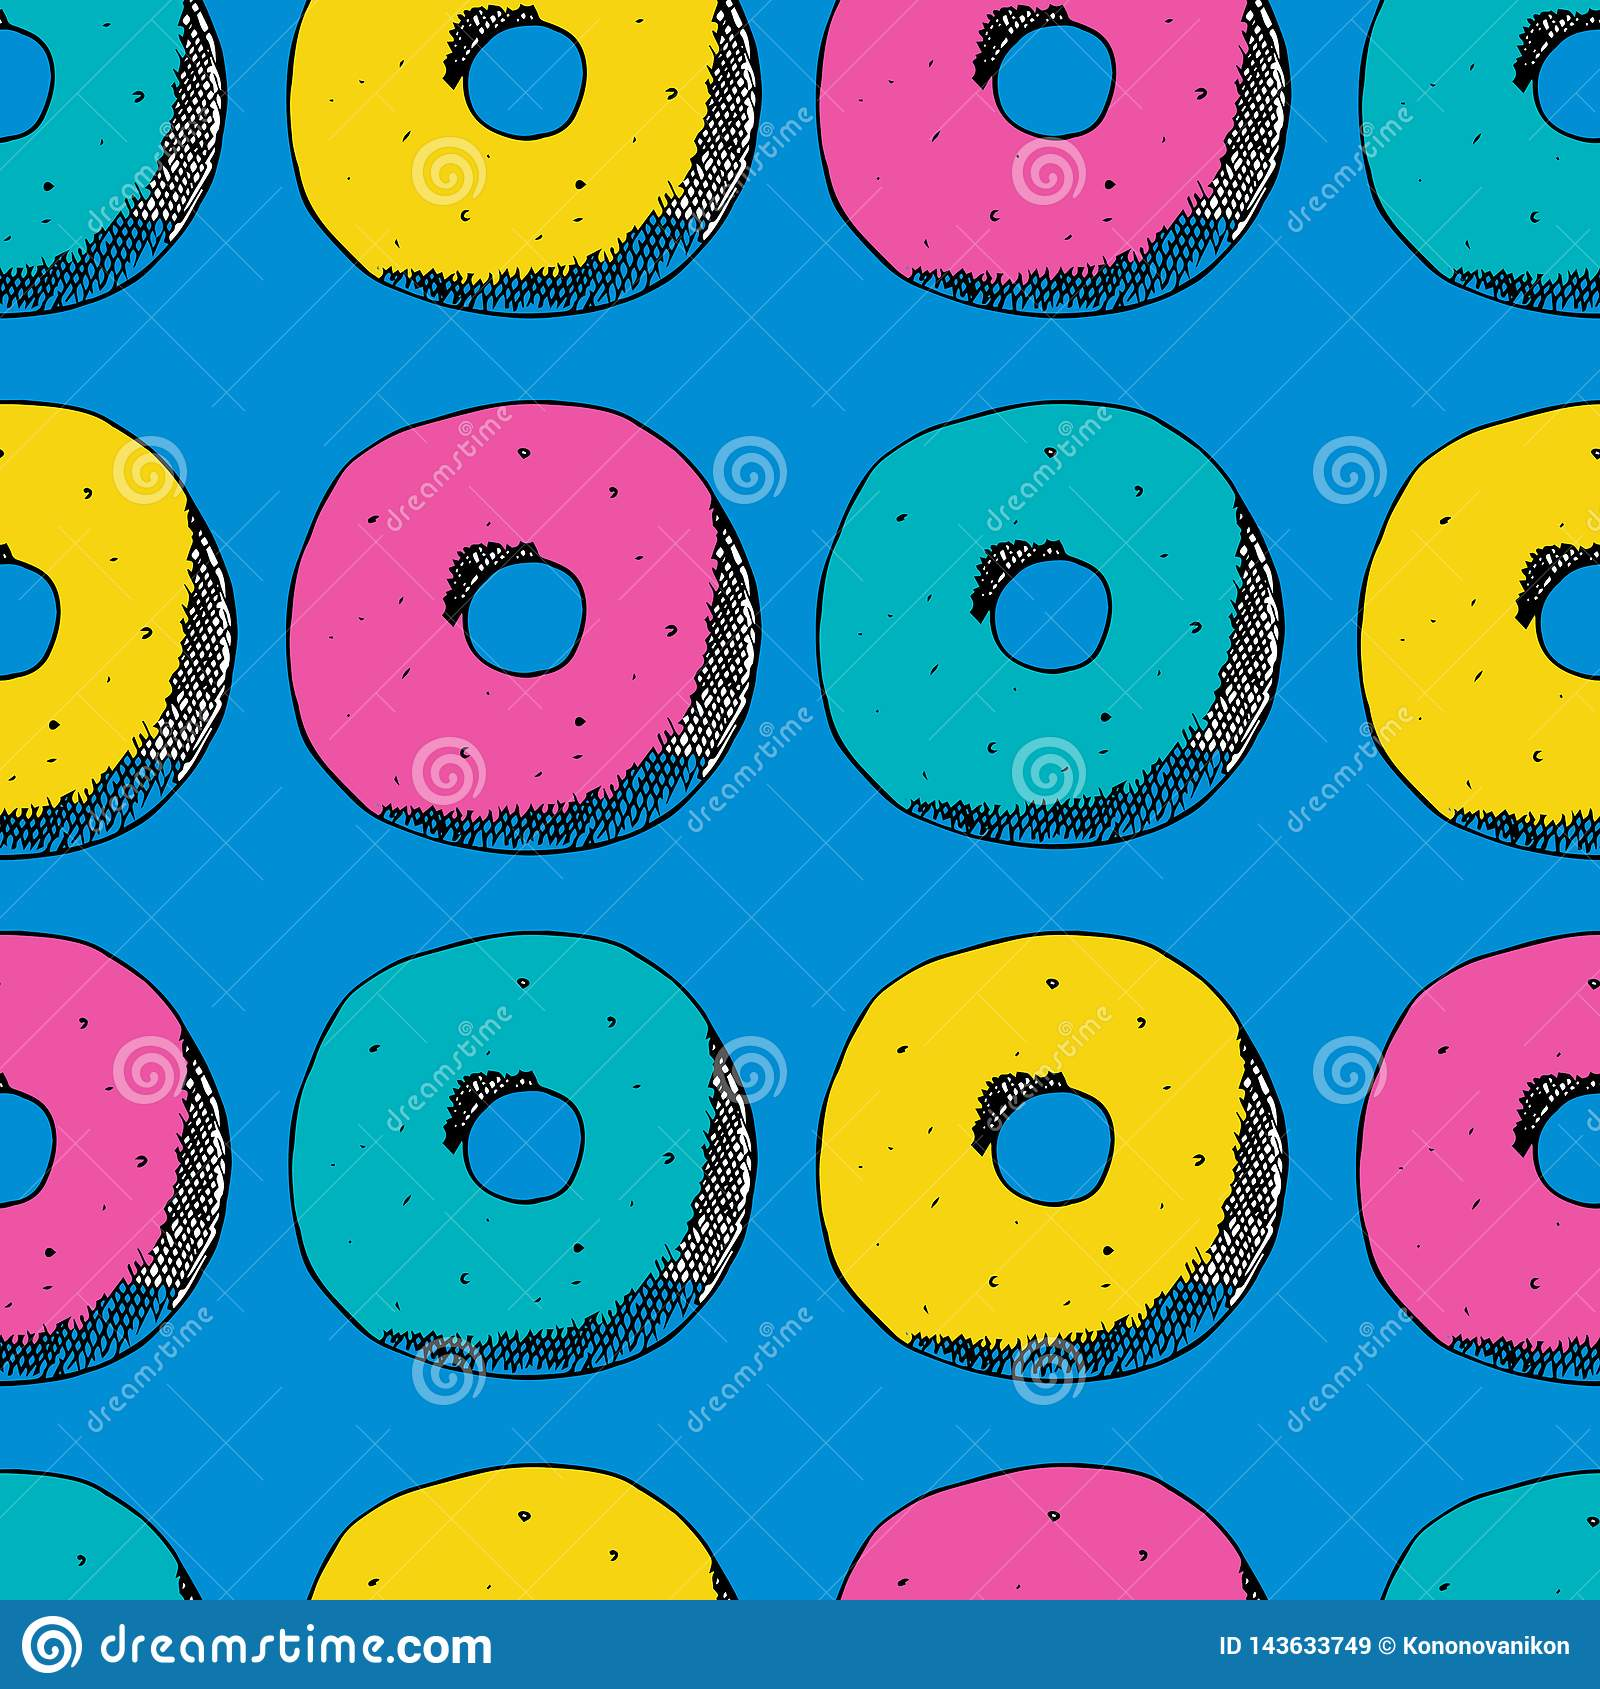 Hand draw seamless pattern. Color donuts, pink, blue, yellow. Vector illustration